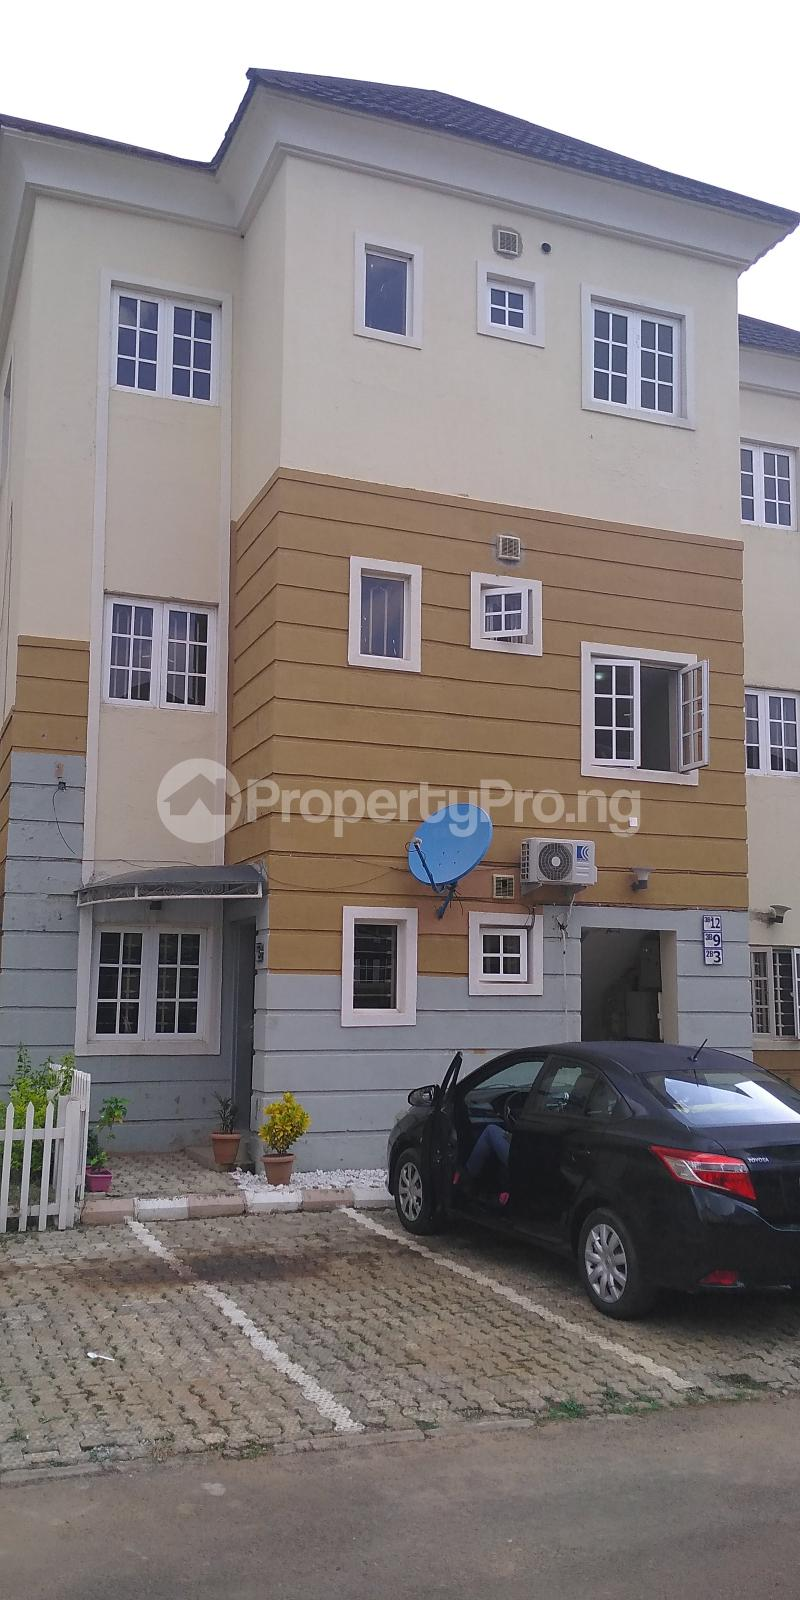 3 bedroom Flat / Apartment for rent Evergreen Estate, Durumi, close to Evergreen mall by the American School Durumi Abuja - 8